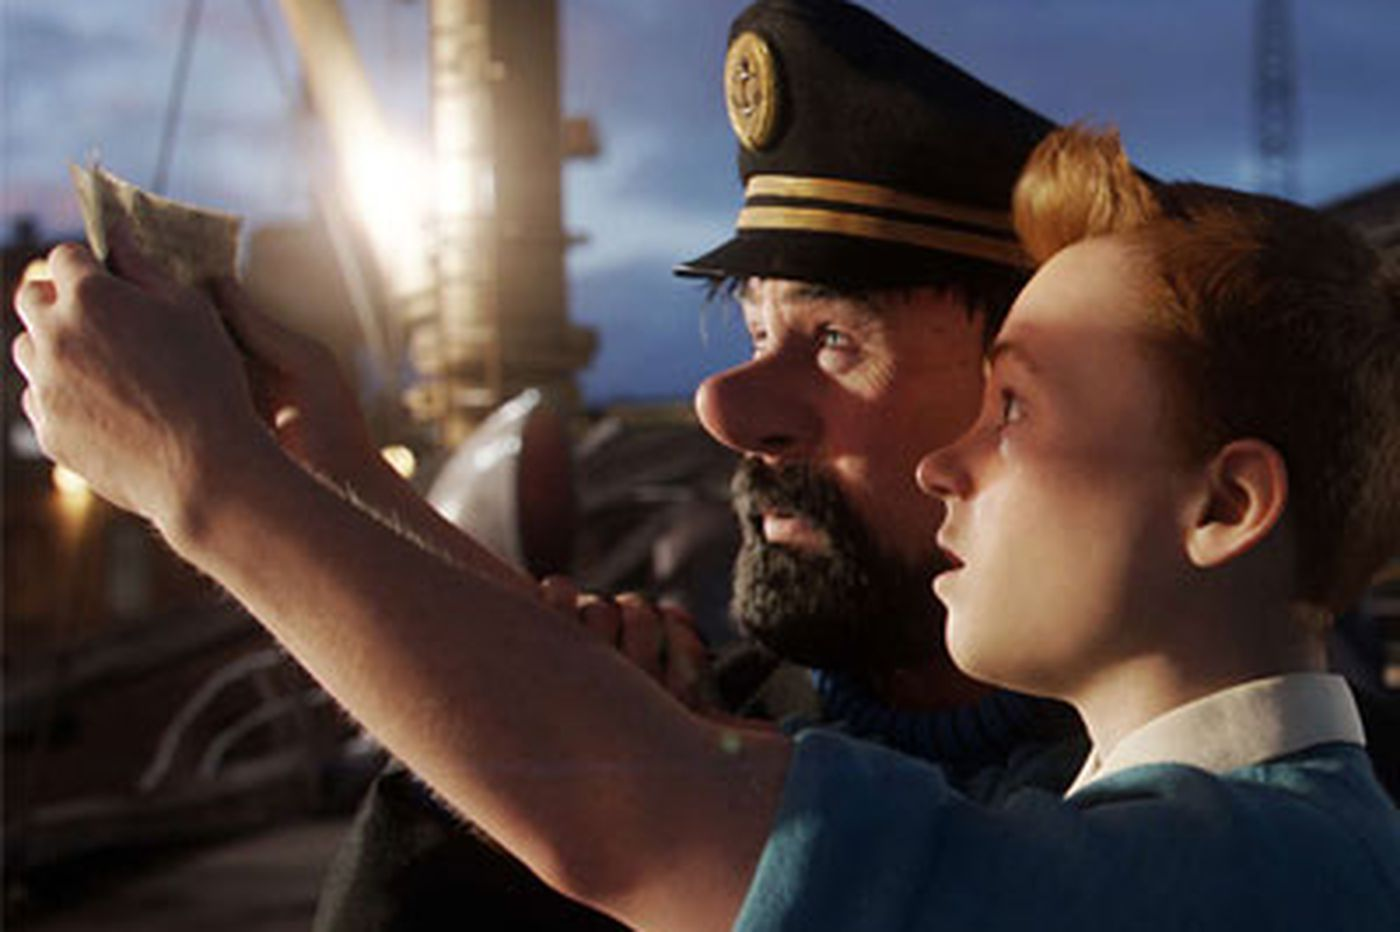 Adventures of Tintin: Extravagant, eye-popping, emotionally shallow